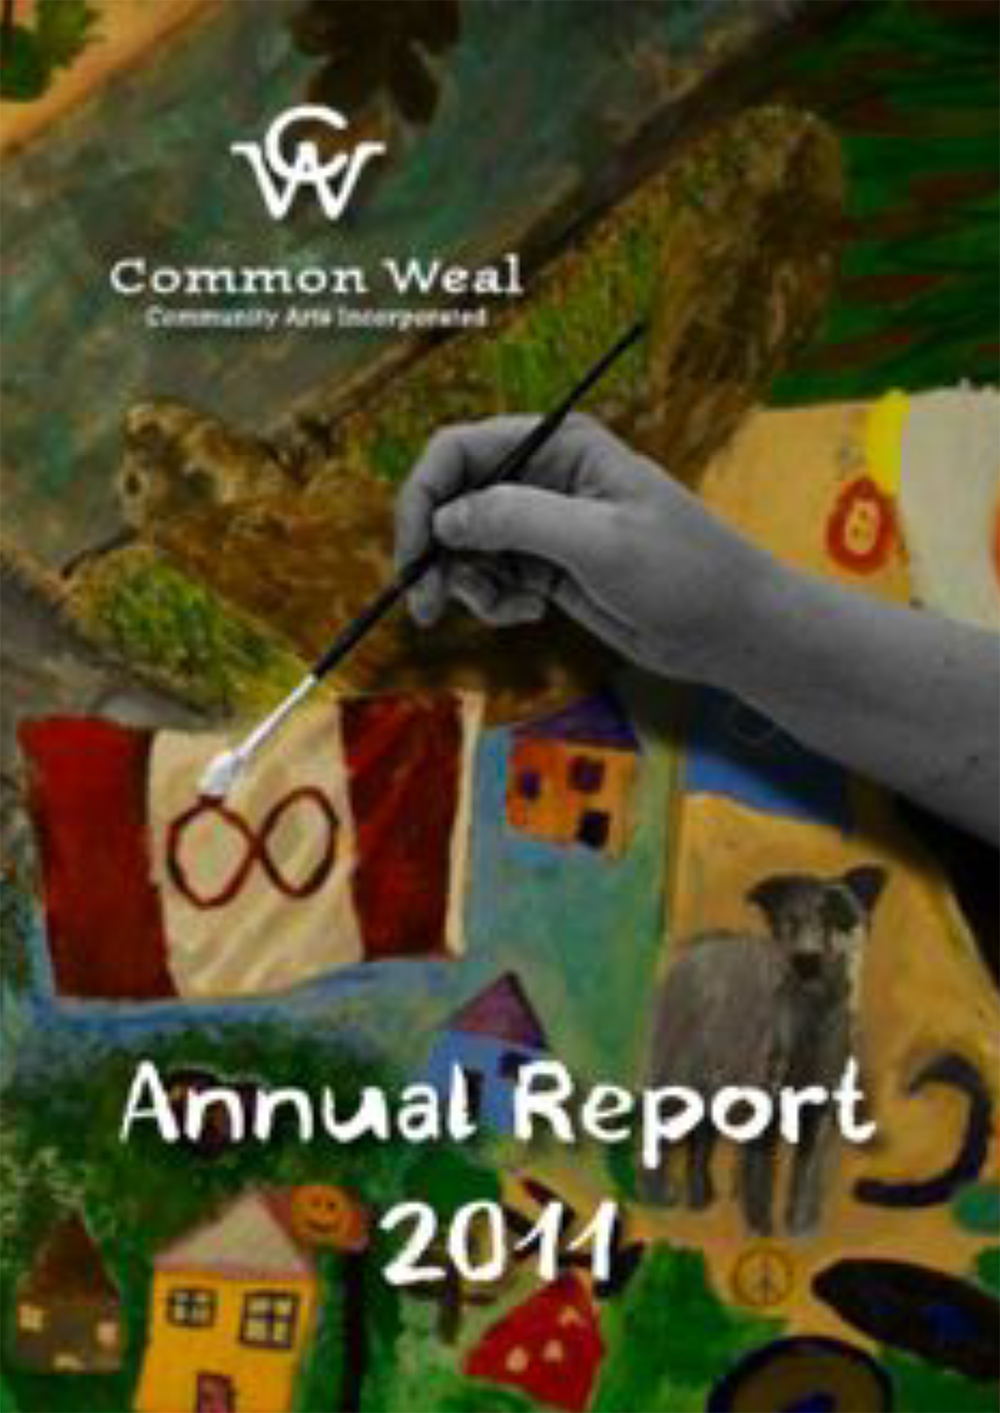 Common Weal Community Arts Annual Report 2011